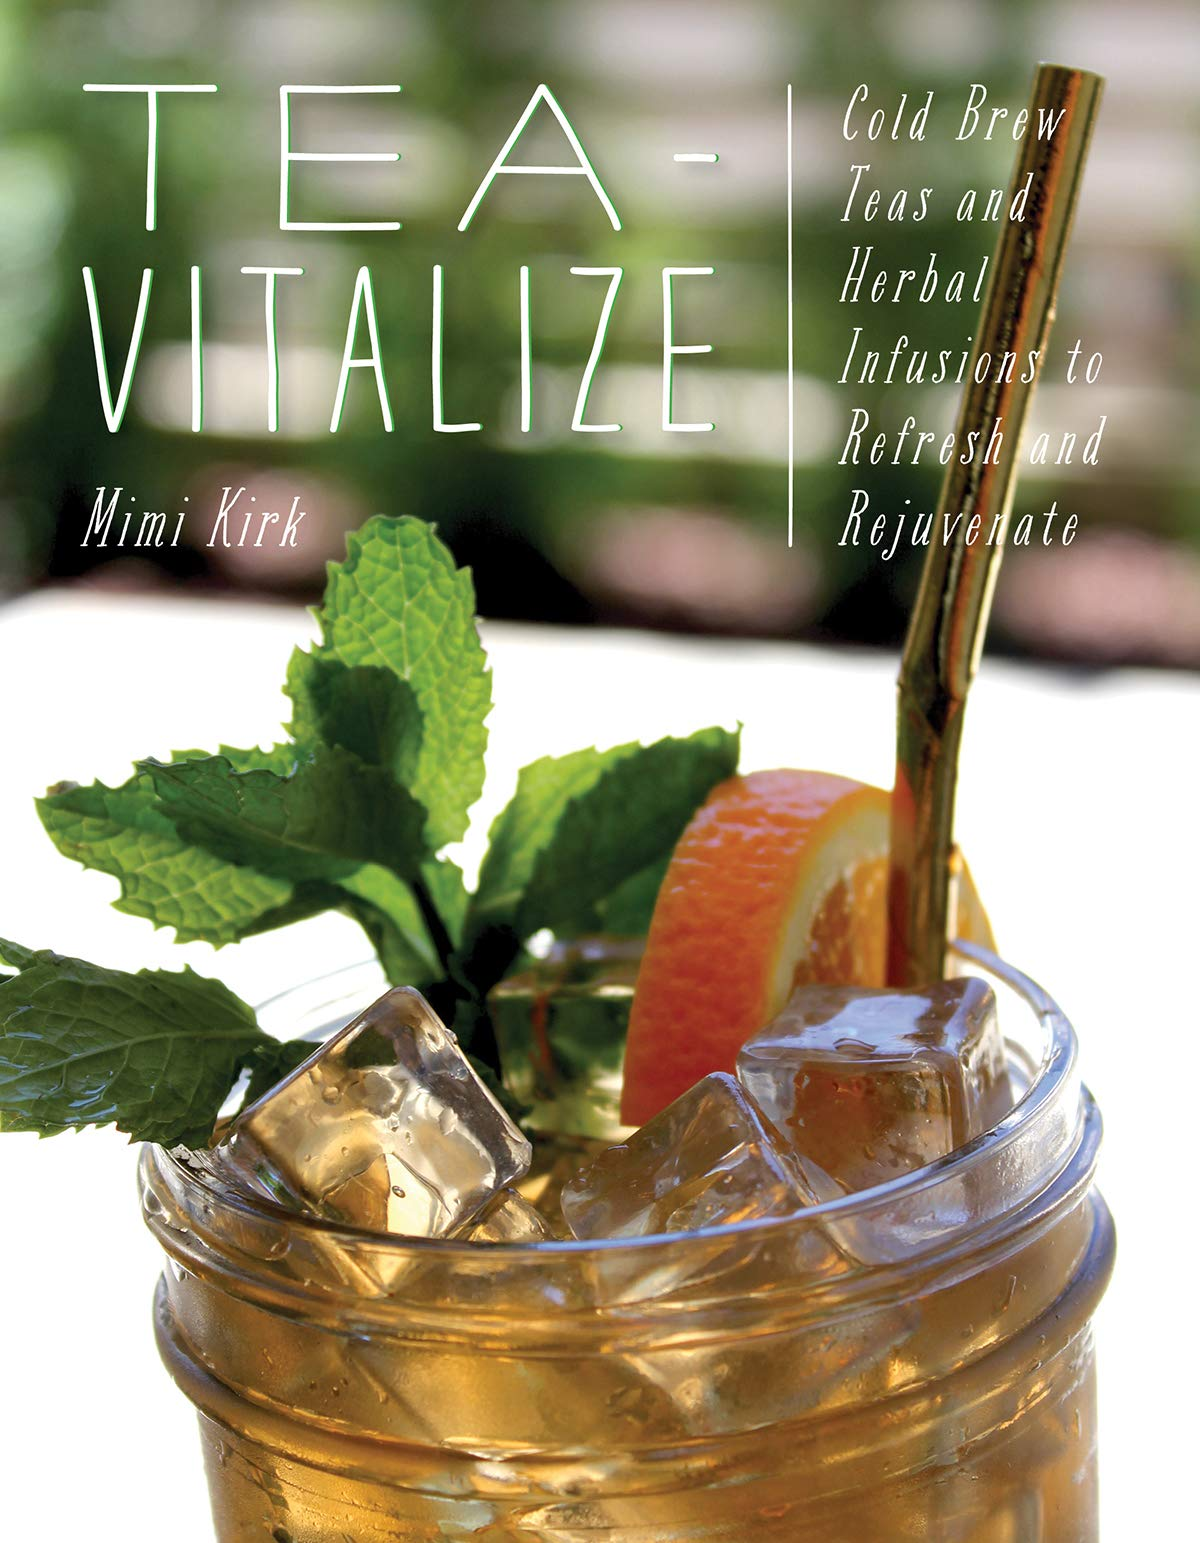 Tea Vitalize  Cold Brew Teas And Herbal Infusions To Refresh And Rejuvenate